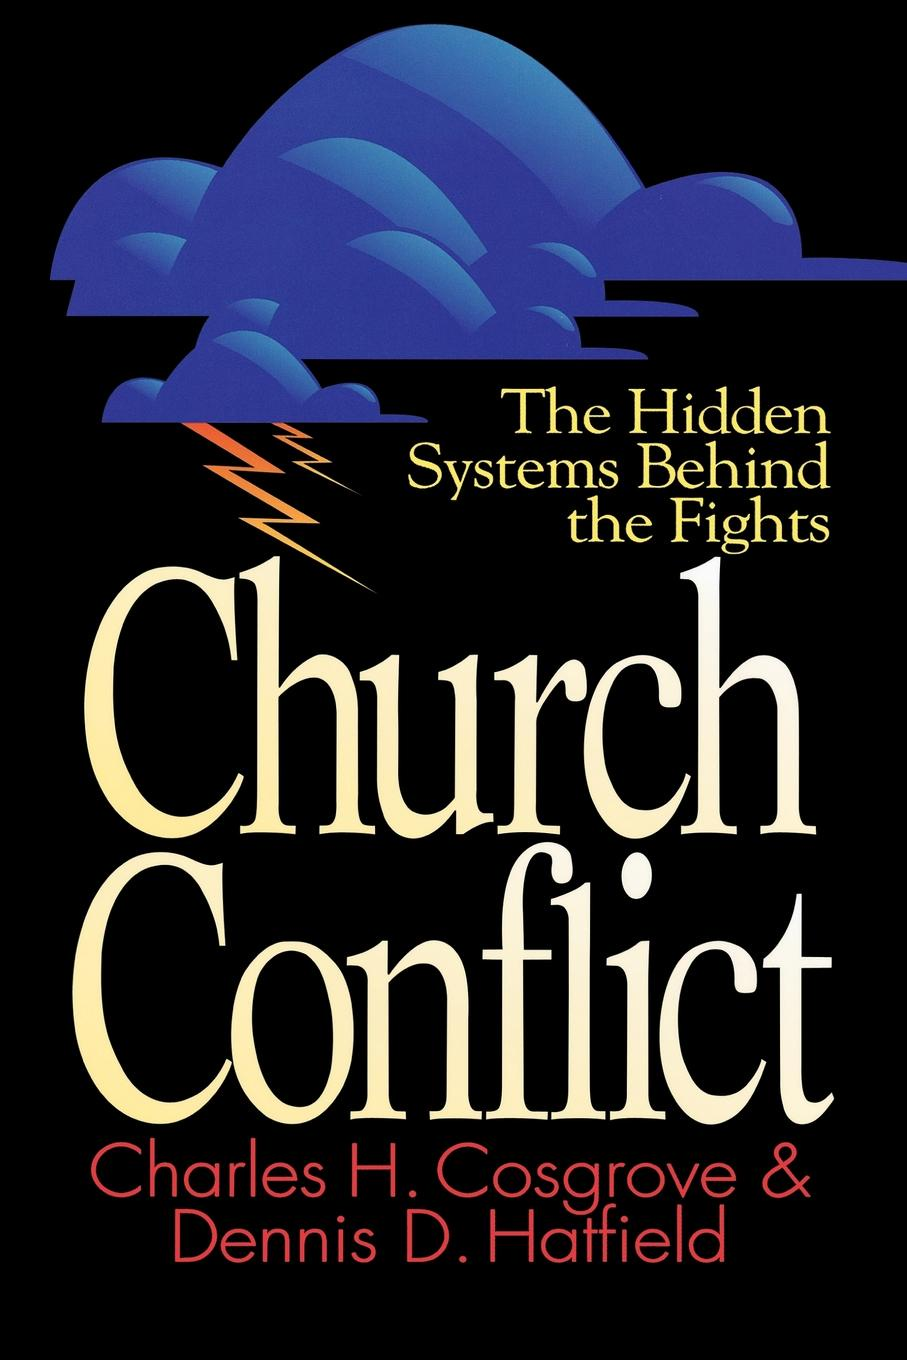 Charles H. Cosgrove, Dennis D. Hatfield Church Conflict d e berlyne conflict arousal and curiosity